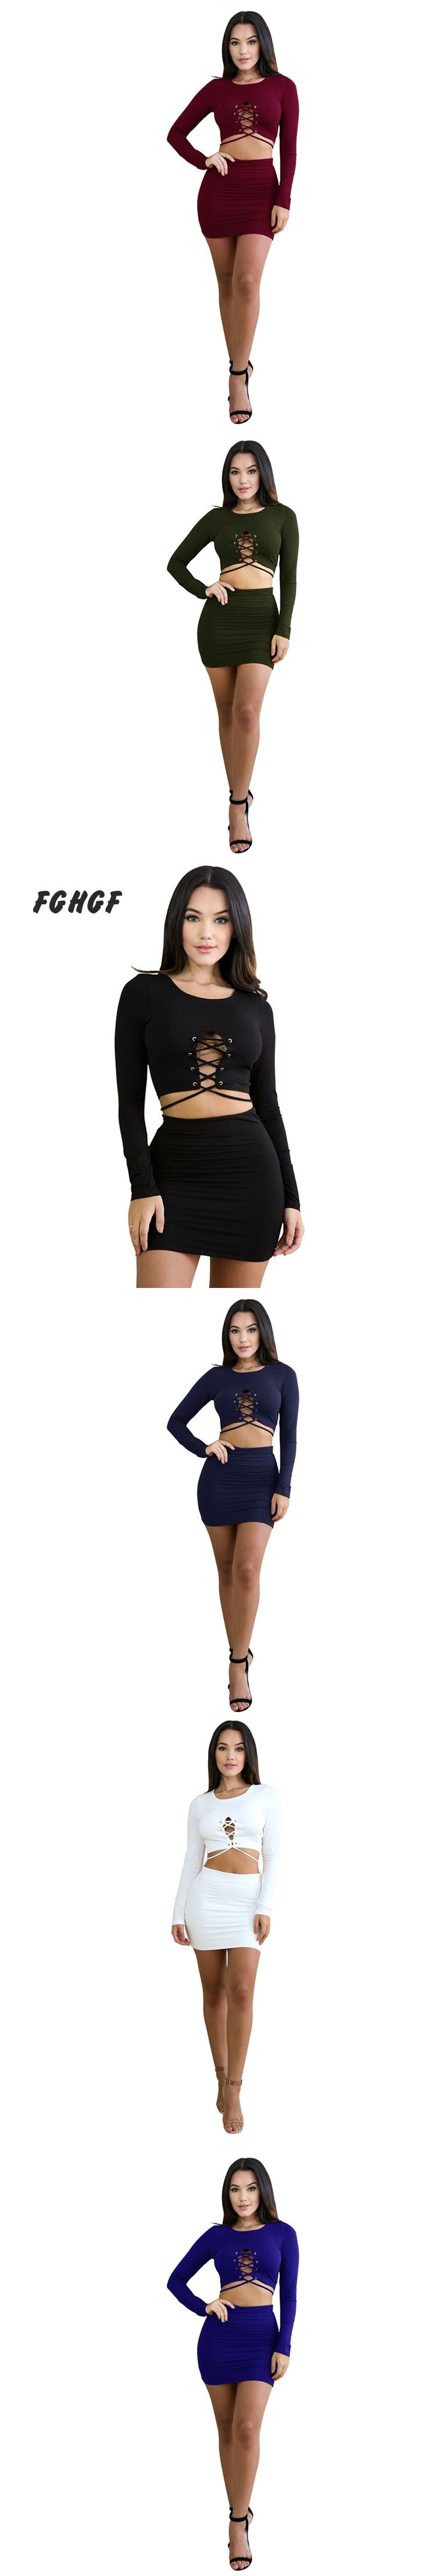 FGHGF Women's Sexy 2 Piece Skirt Set Conjunto Feminino Long Sleeve O-neck Hollow Pullover Crop Top &Mini Skirt Set Two Piece Set